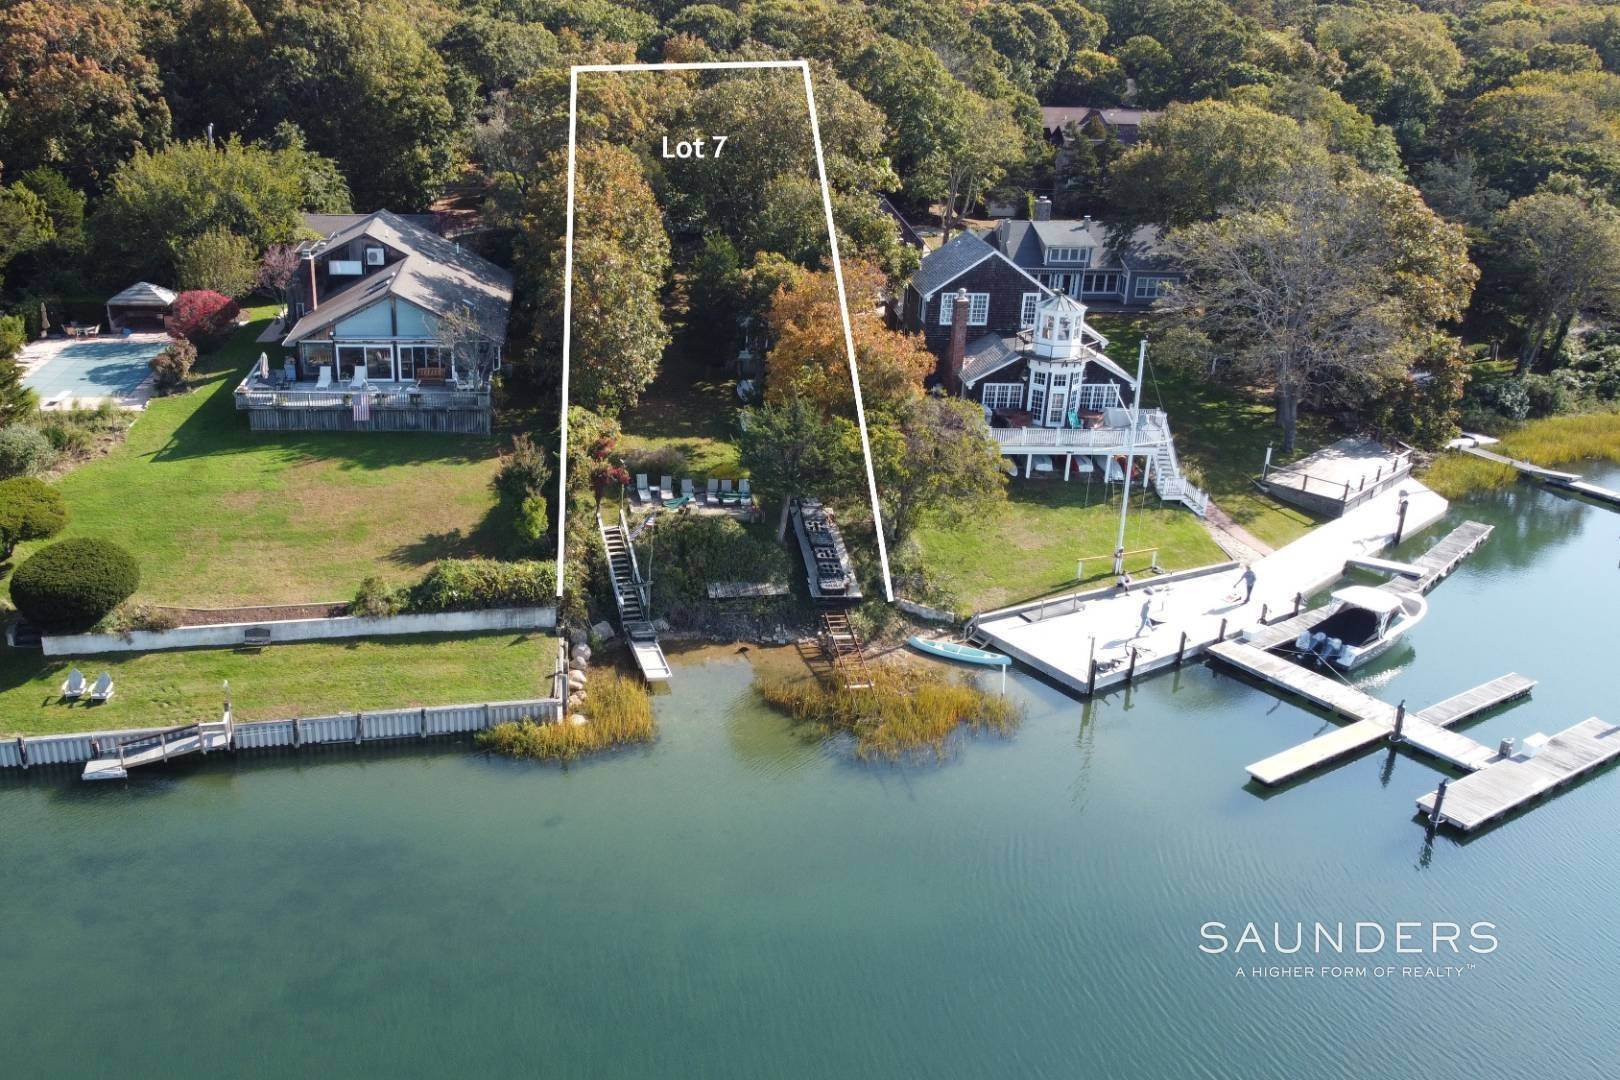 5. Single Family Homes for Sale at 3 M H Waterfront : Bld A 2600 Sq Ft Home With Dock /+1 Acre Lot! 6 And 7 Outlook Ave, East Hampton, East Hampton Town, NY 11937